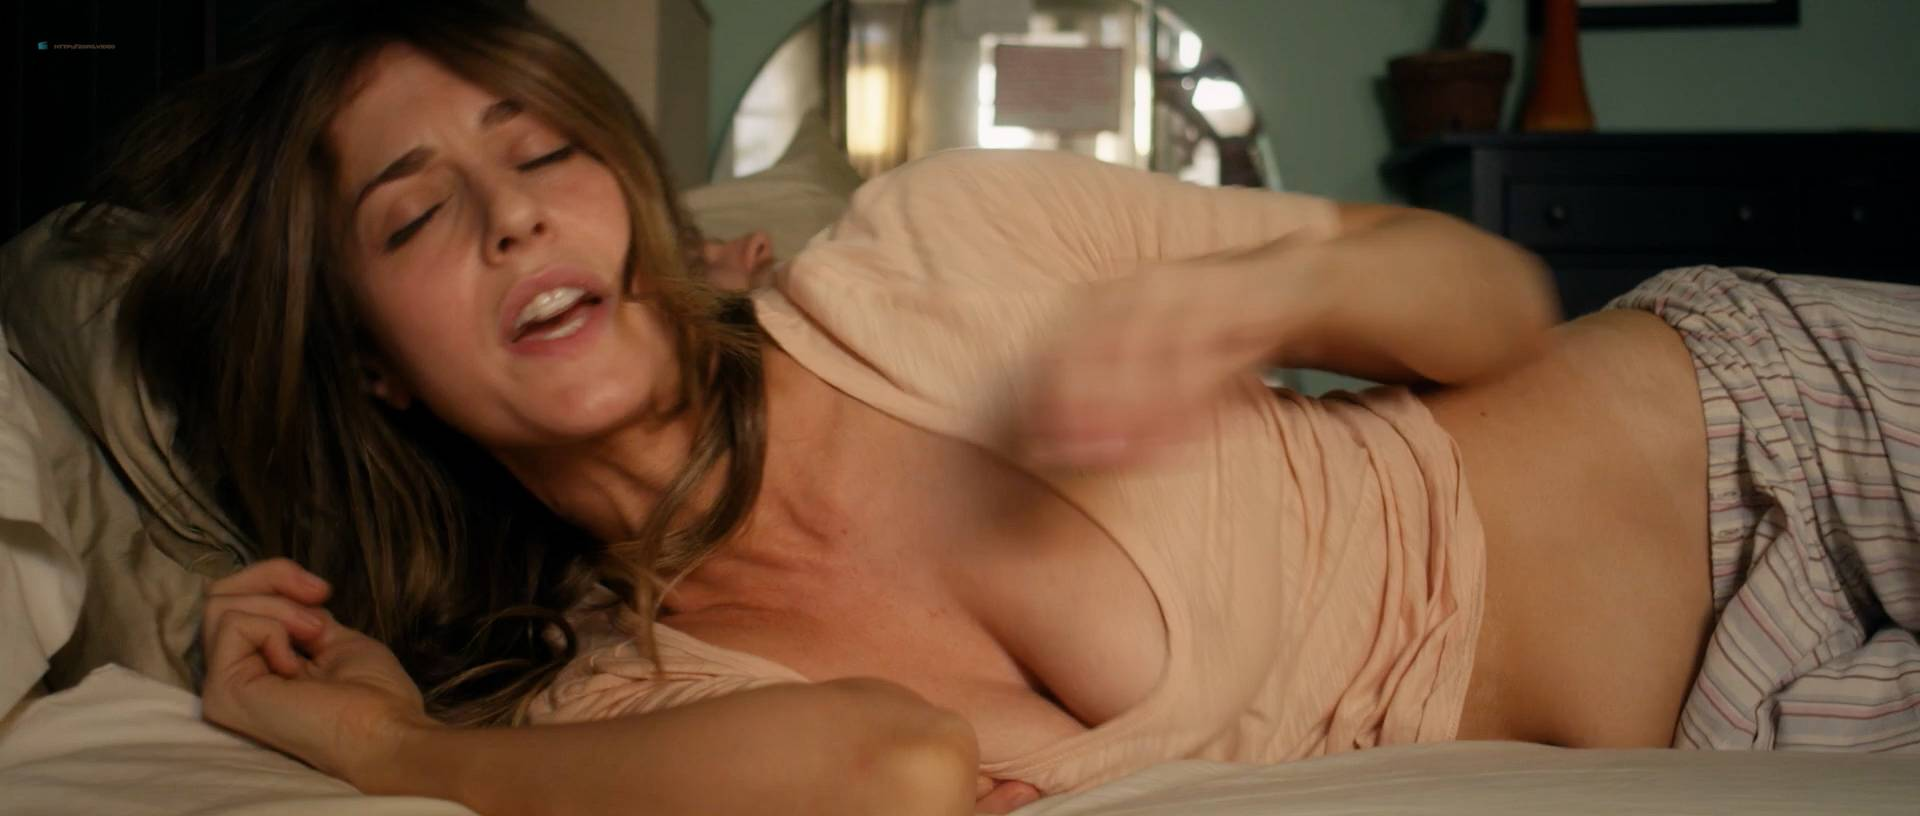 Kat Foster nude topless and sex and Riki Lindhome hot pokies - The  Dramatics: A